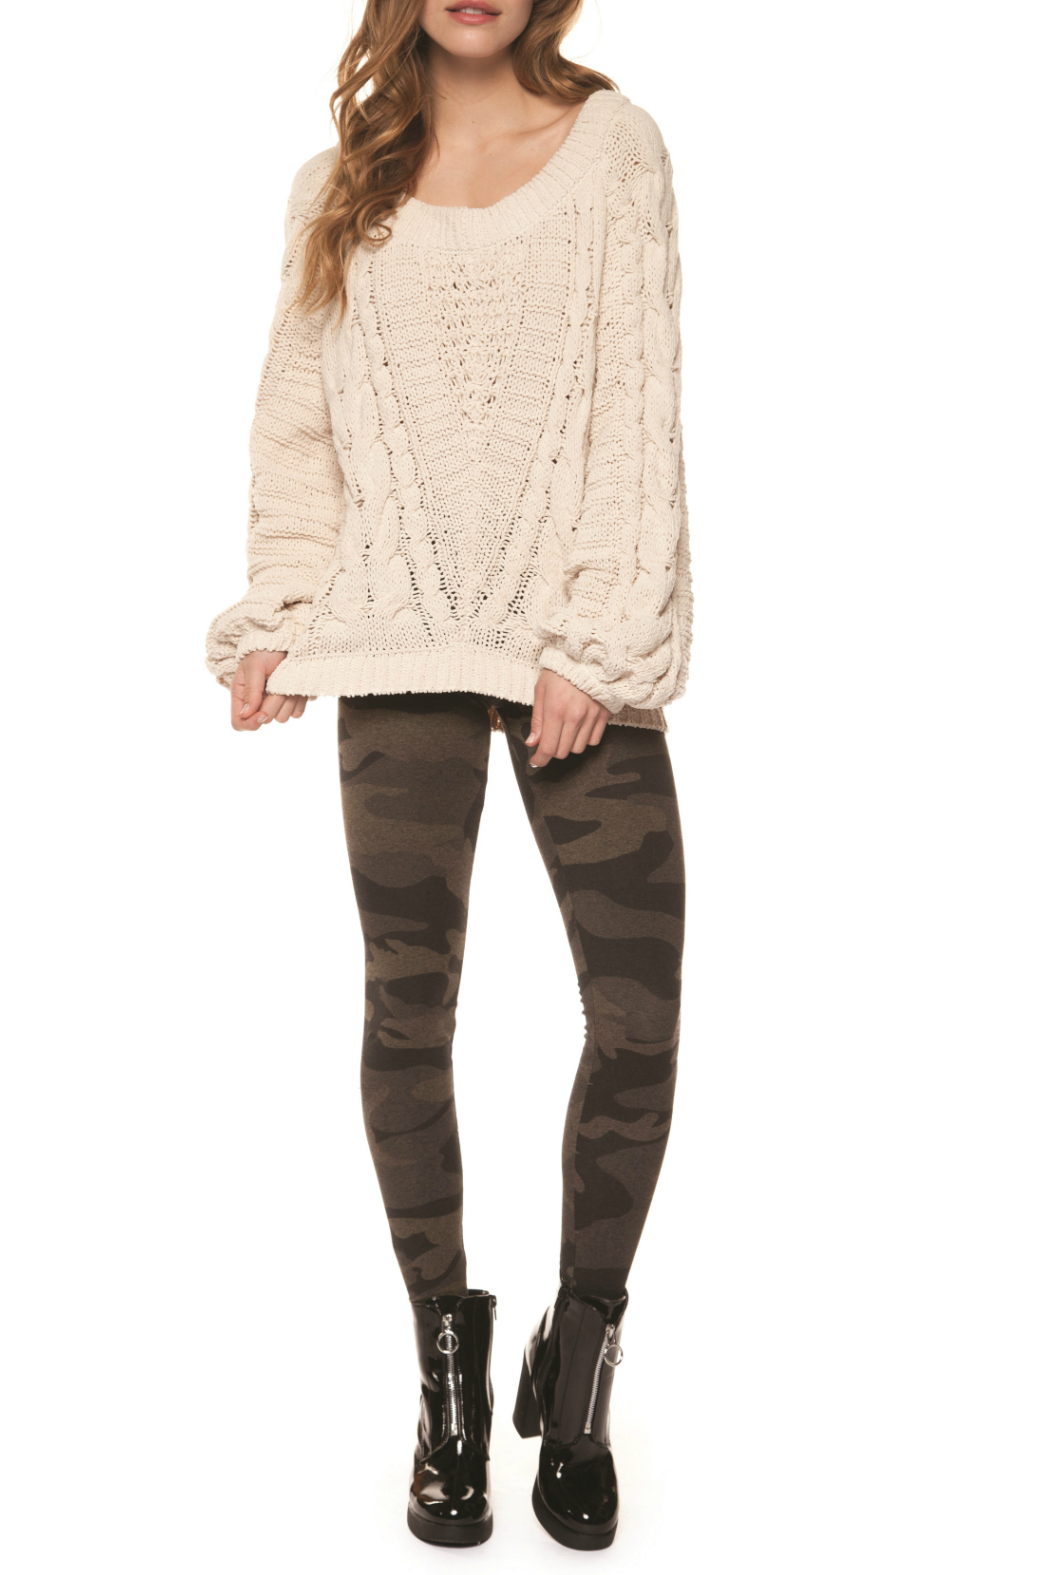 cf37b24e002a1 Dex Camo Pull-on Legging from New Jersey by Charlotte s Web Towaco ...